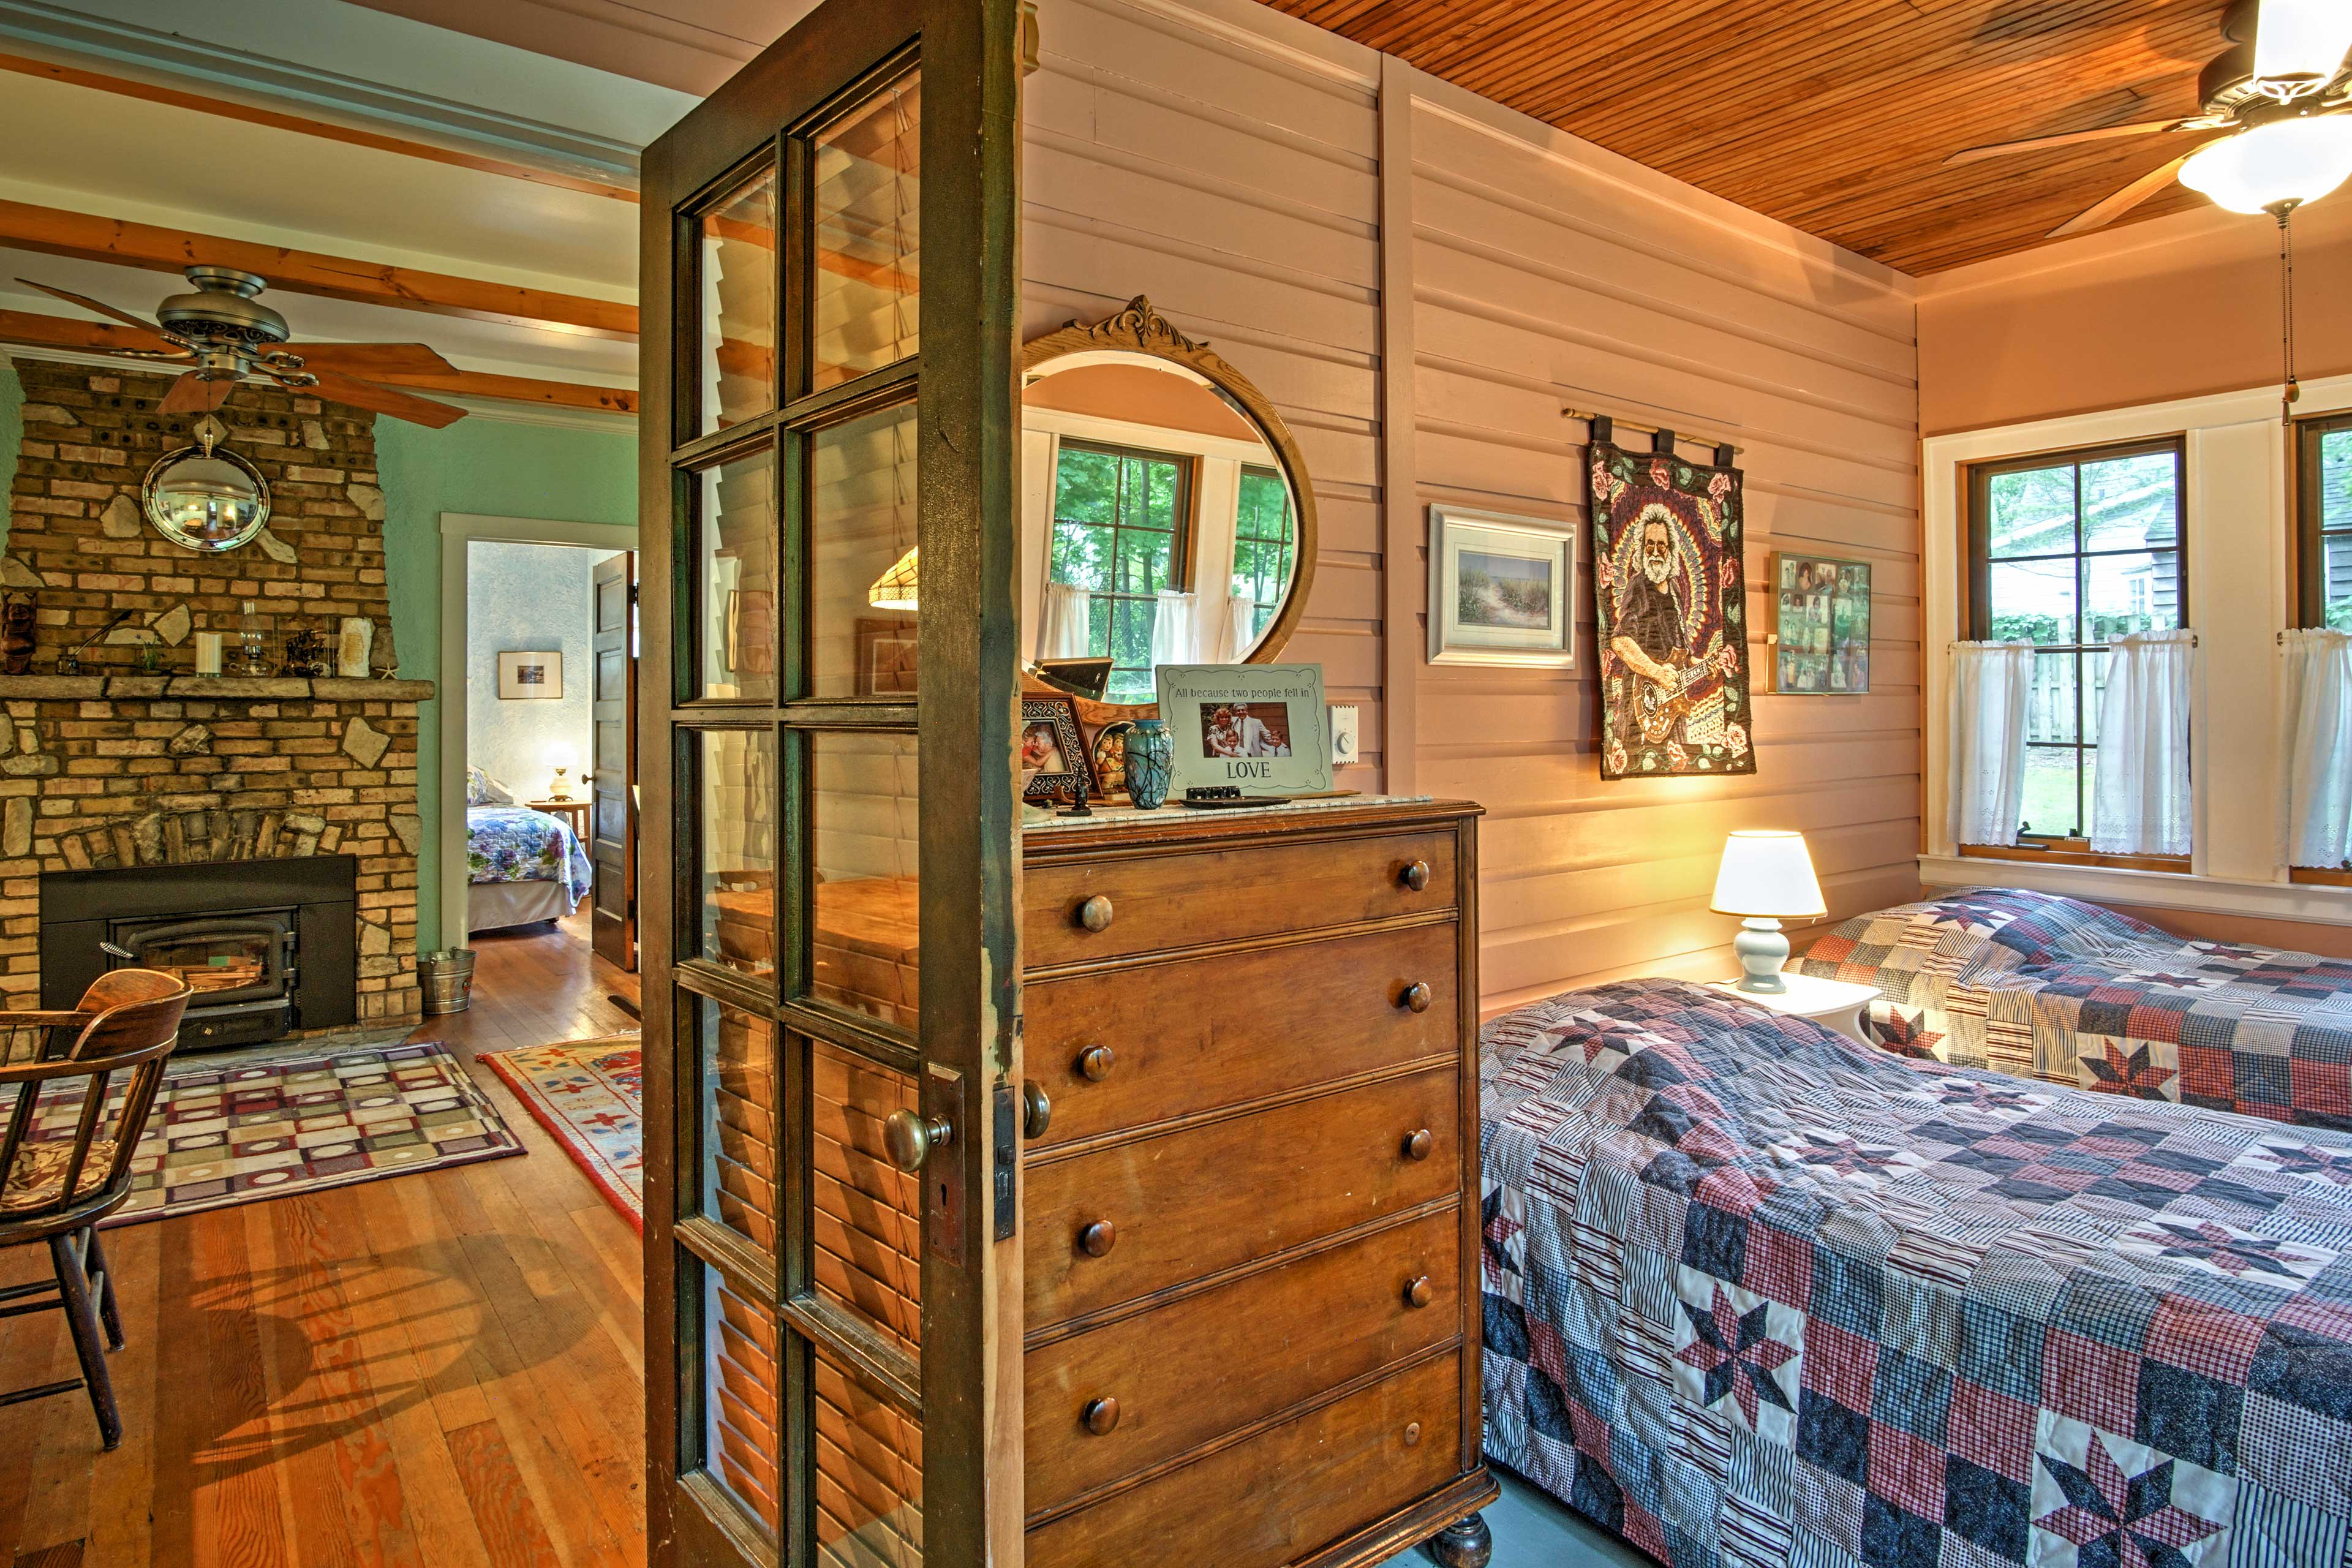 Just off of the living room is a cozy bedroom with wood paneling and charming windows.